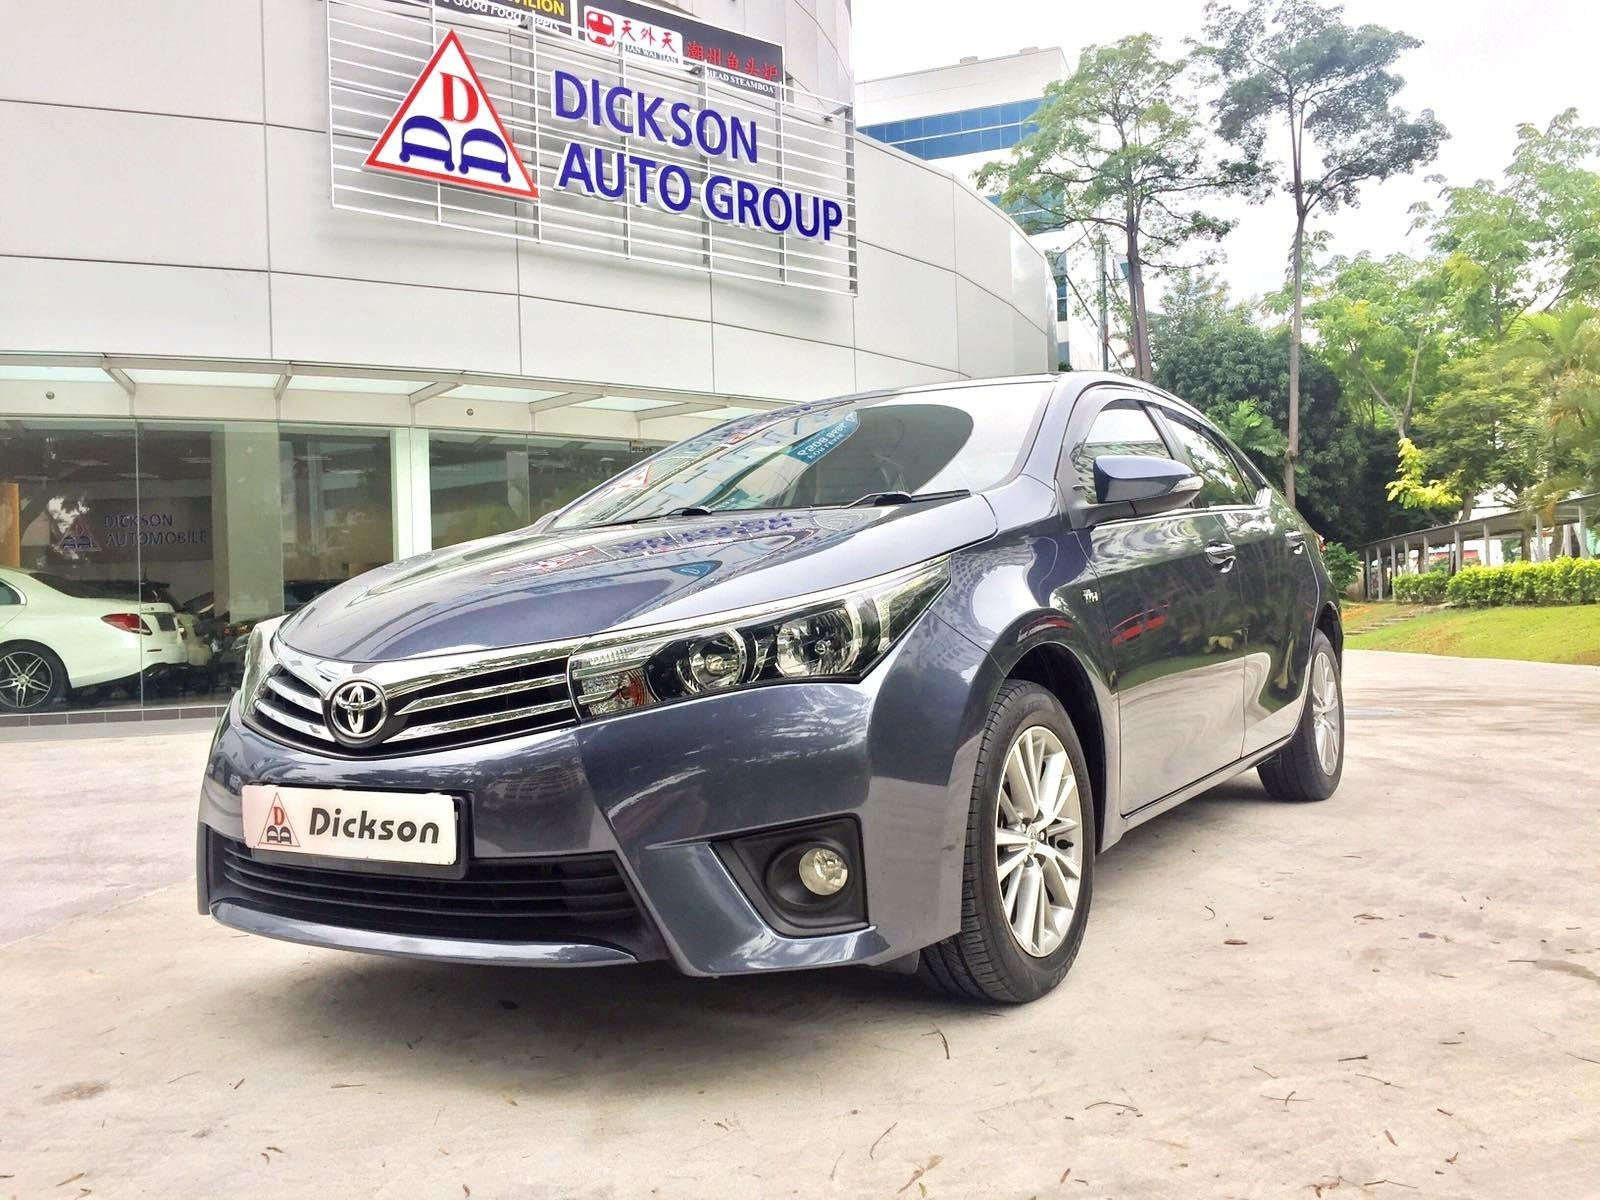 Toyota Corolla Altis 1 6 Classic Auto Cars Used Cars On Carousell